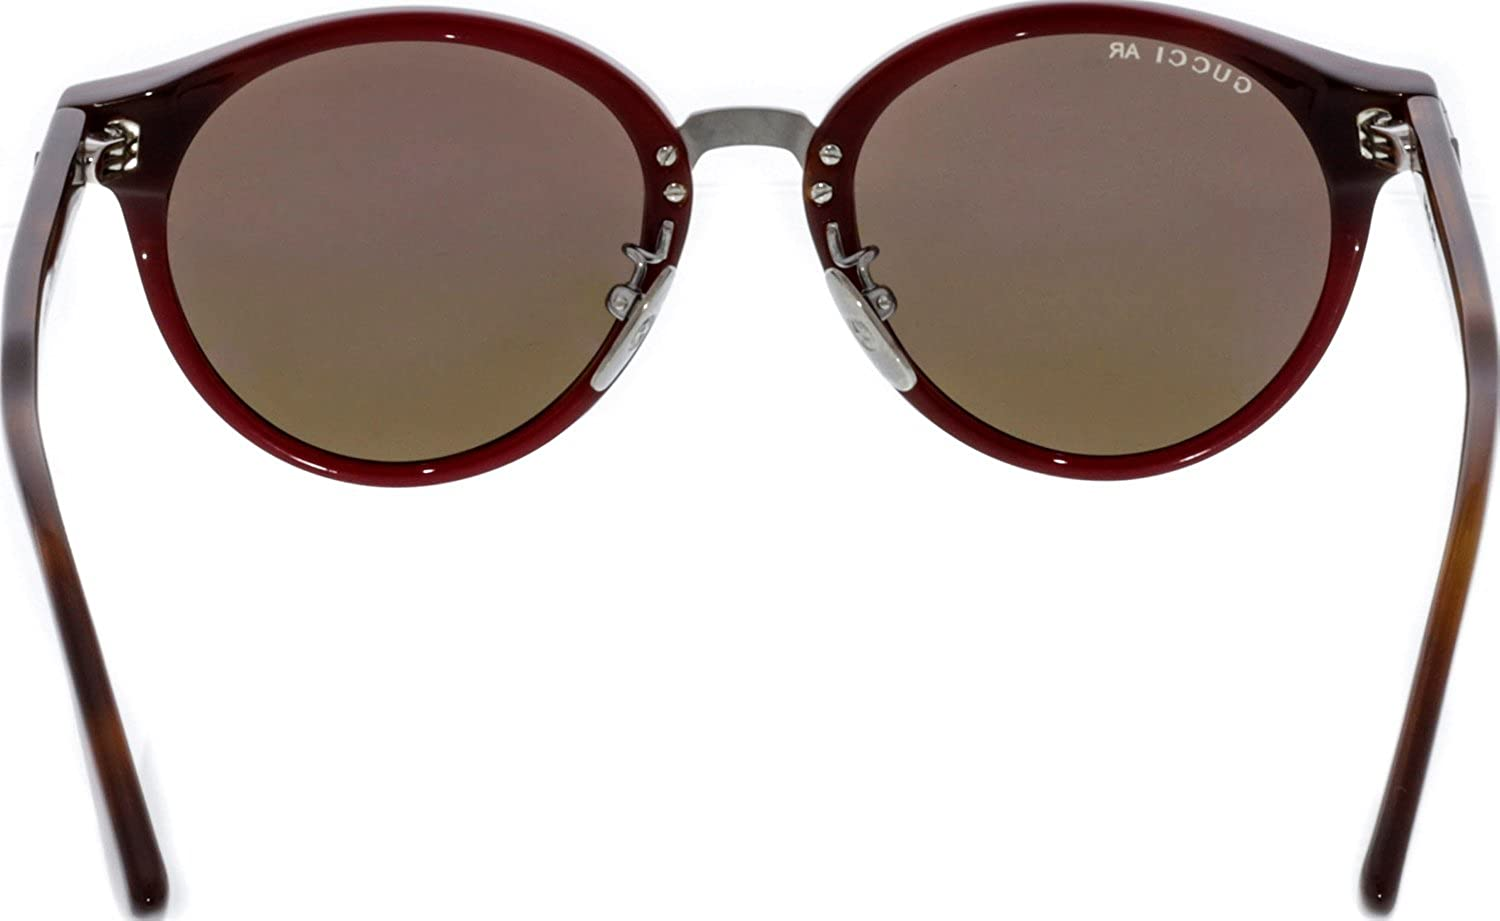 026b5242274 Amazon.com  Gucci GG 0066S 001 Havana Plastic Round Sunglasses Brown Lens   Gucci  Clothing